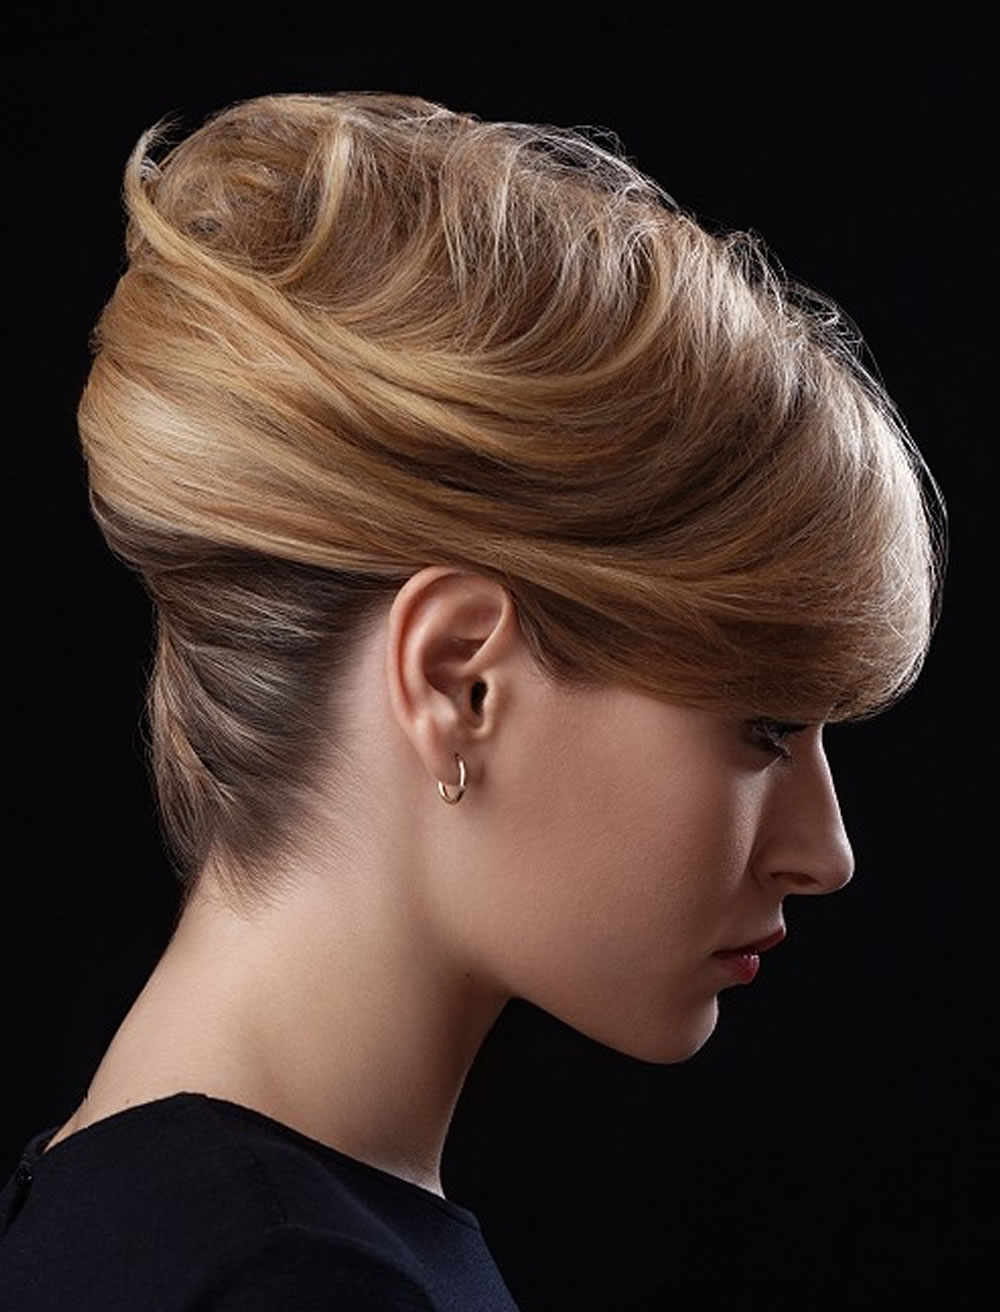 Updo Hairstyles For Round, Square Oval Faces 2018 - 2019 2